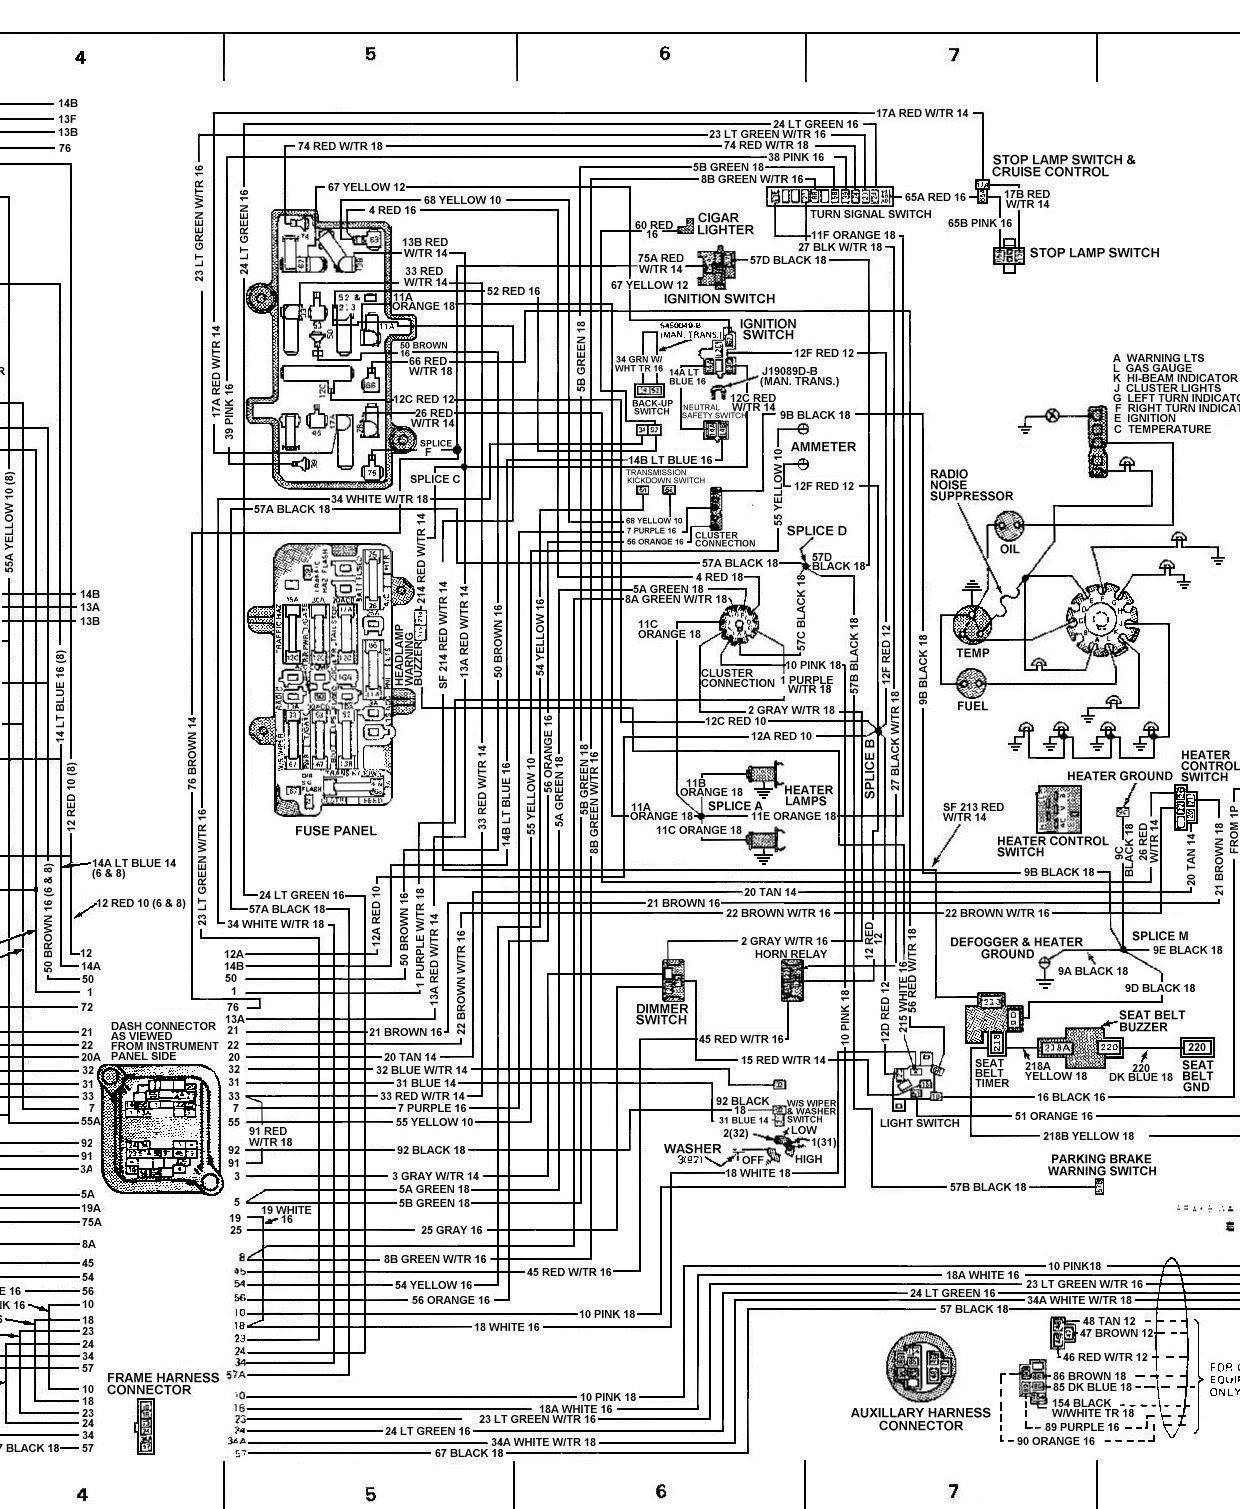 2009 Dodge Ram 1500 Wiring Diagram: Great Dodge Ram Wiring Harness Diagram  Pictures Inspiration rh